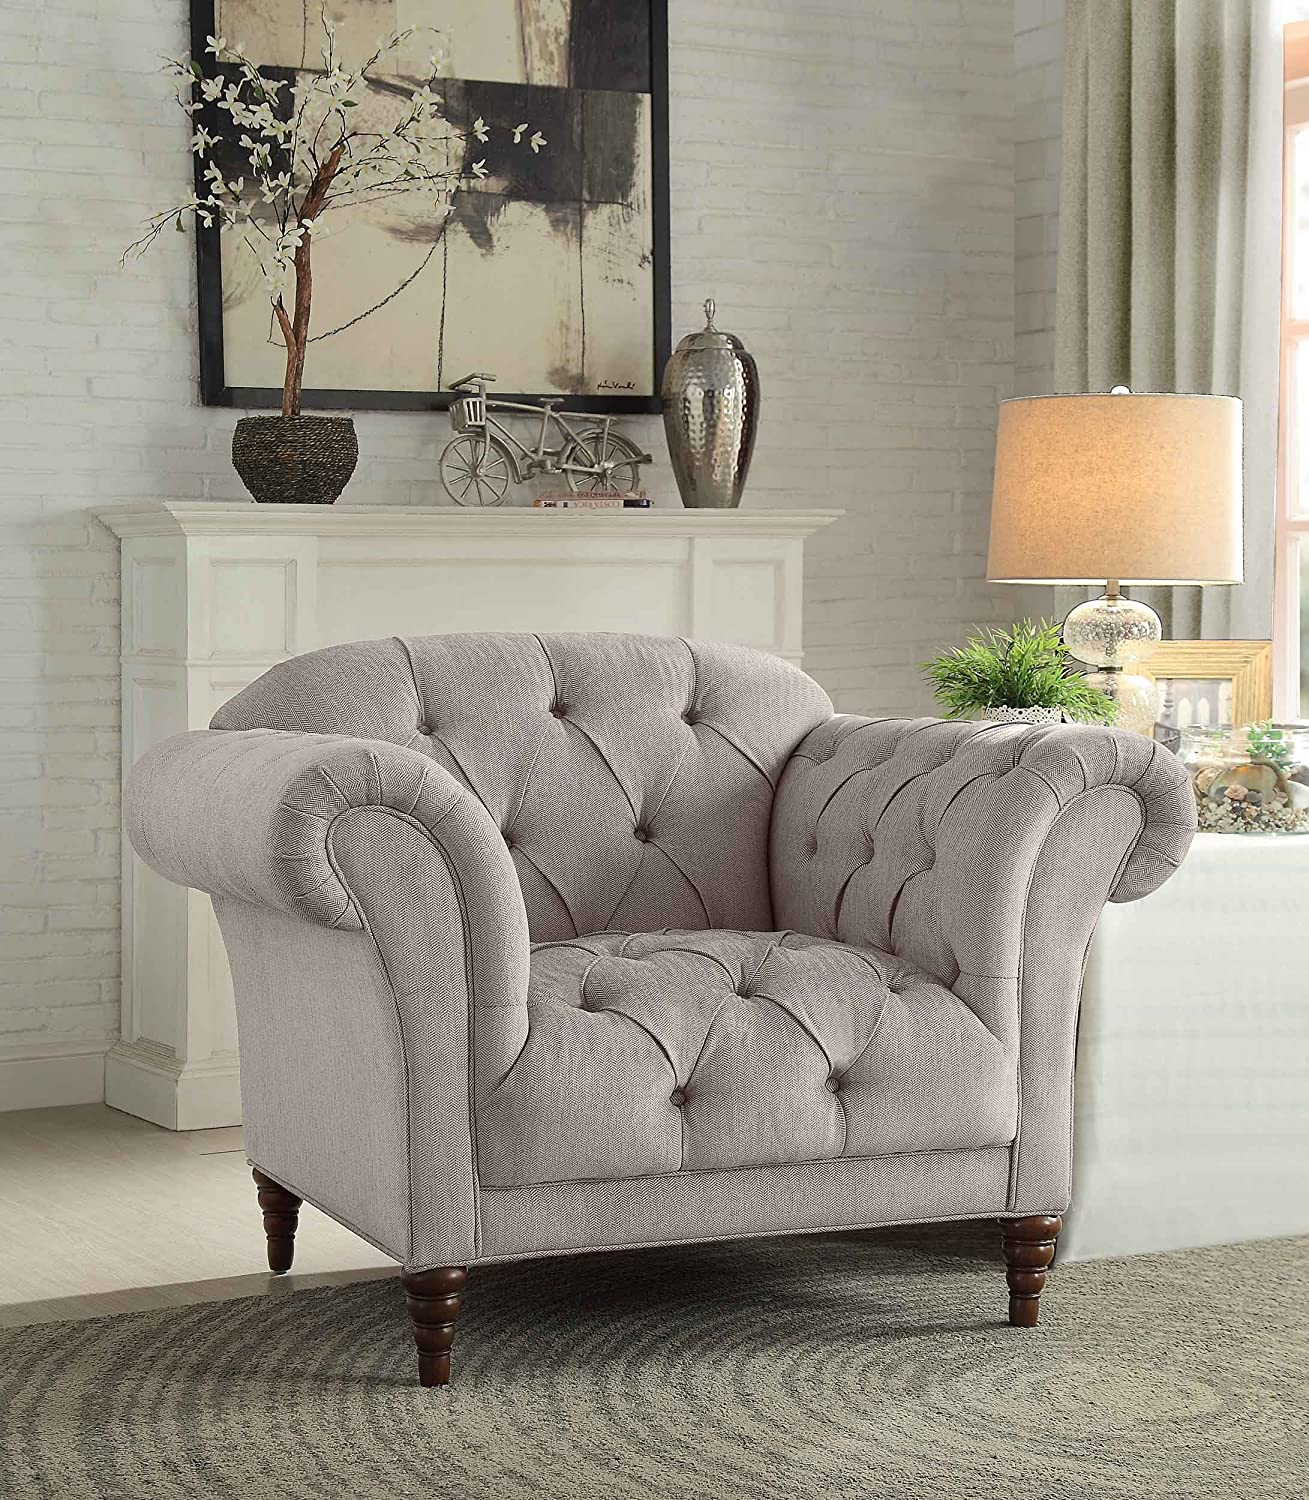 Chair Upholstery Fabric Amazon Solvang Tufted Light Beige Fabric